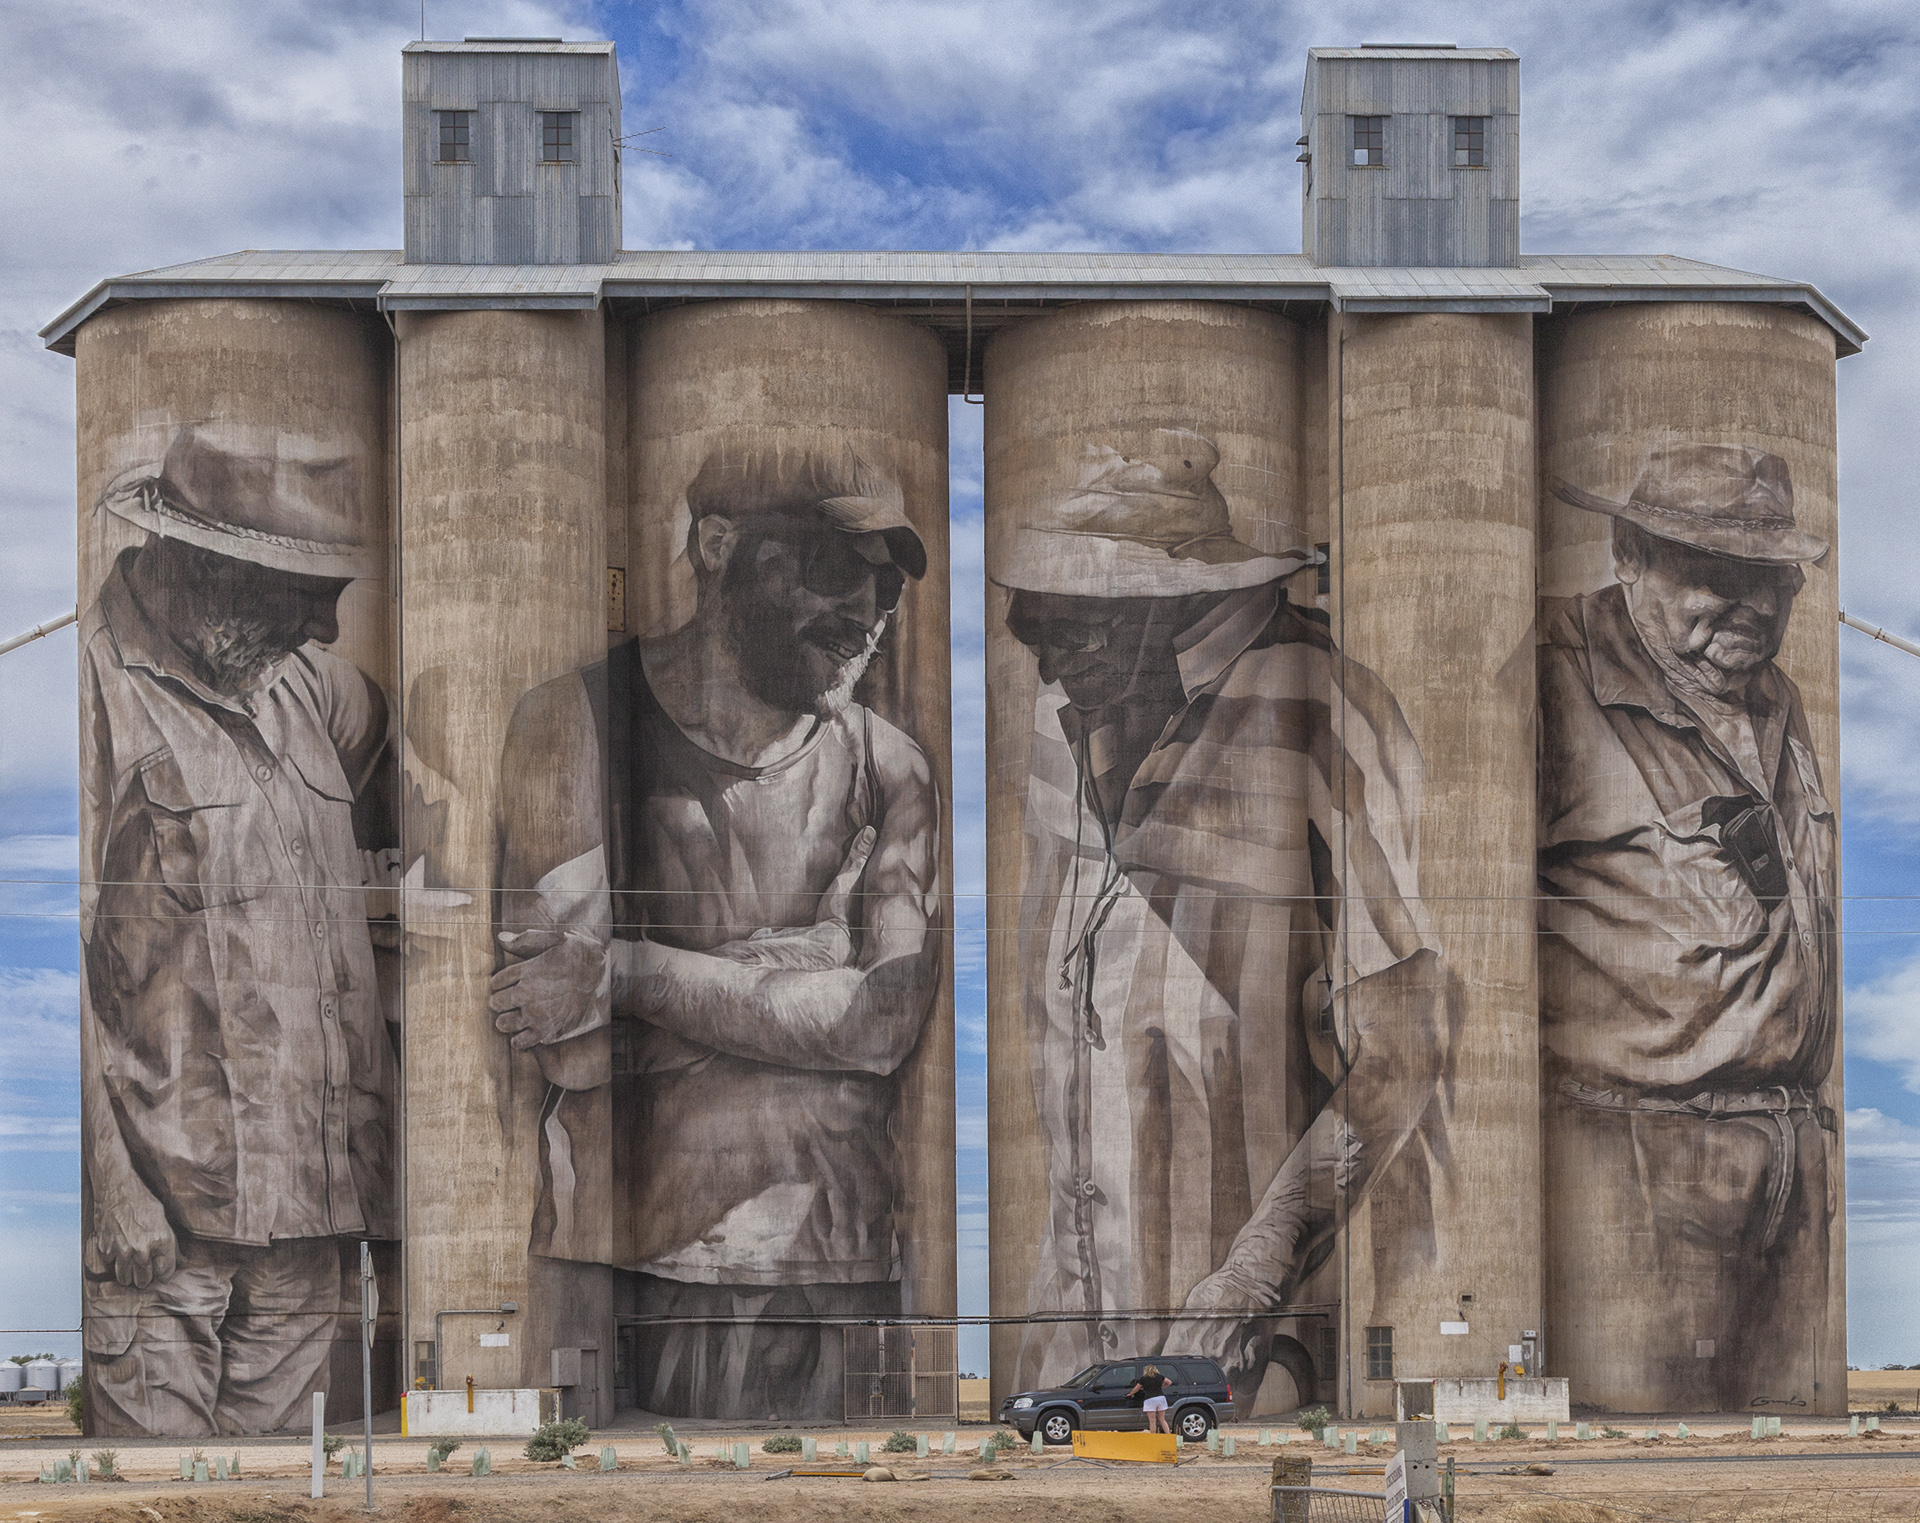 Painted silos in Australia